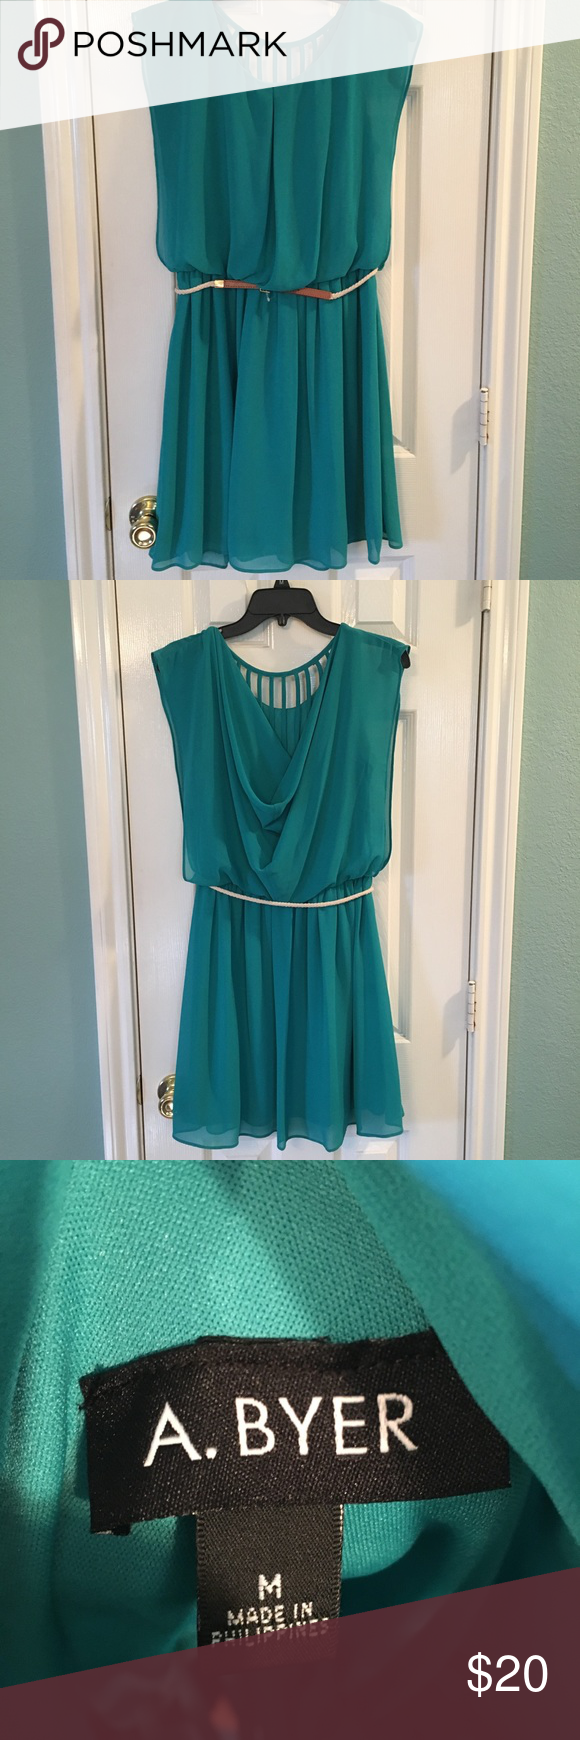 Cute A Byer Teal Green Dress Size M Nwot With Images Teal